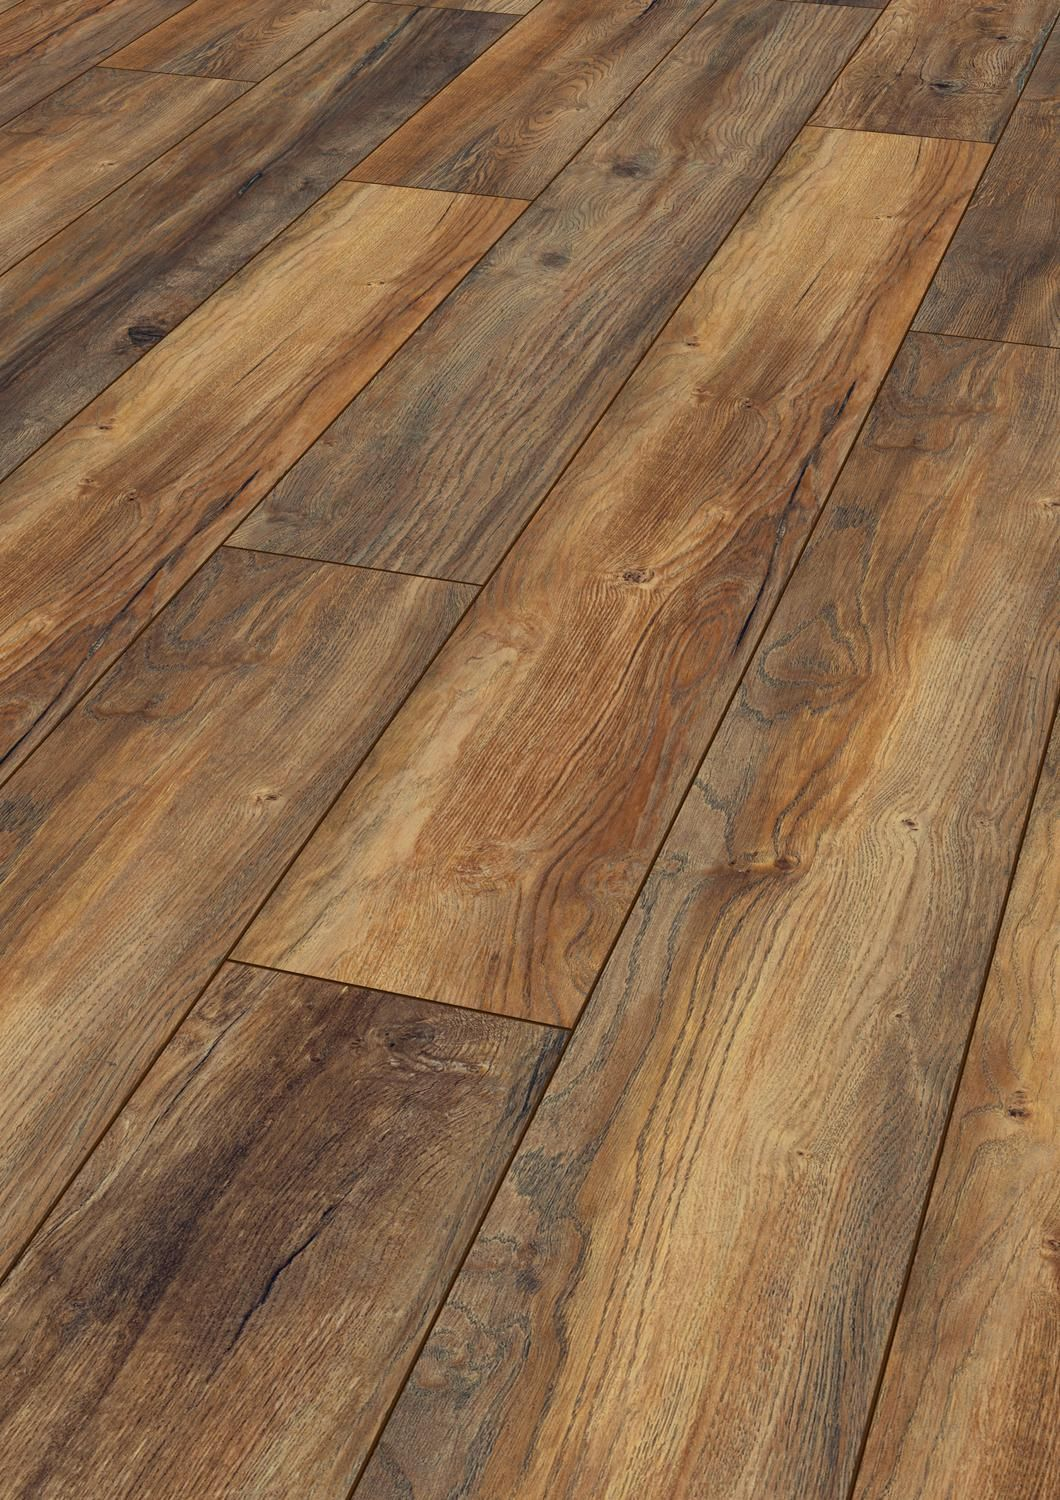 8mm Harbour Oak Wide Laminate Floor By Des Kelly Interiors Oak Laminate Flooring House Flooring Flooring